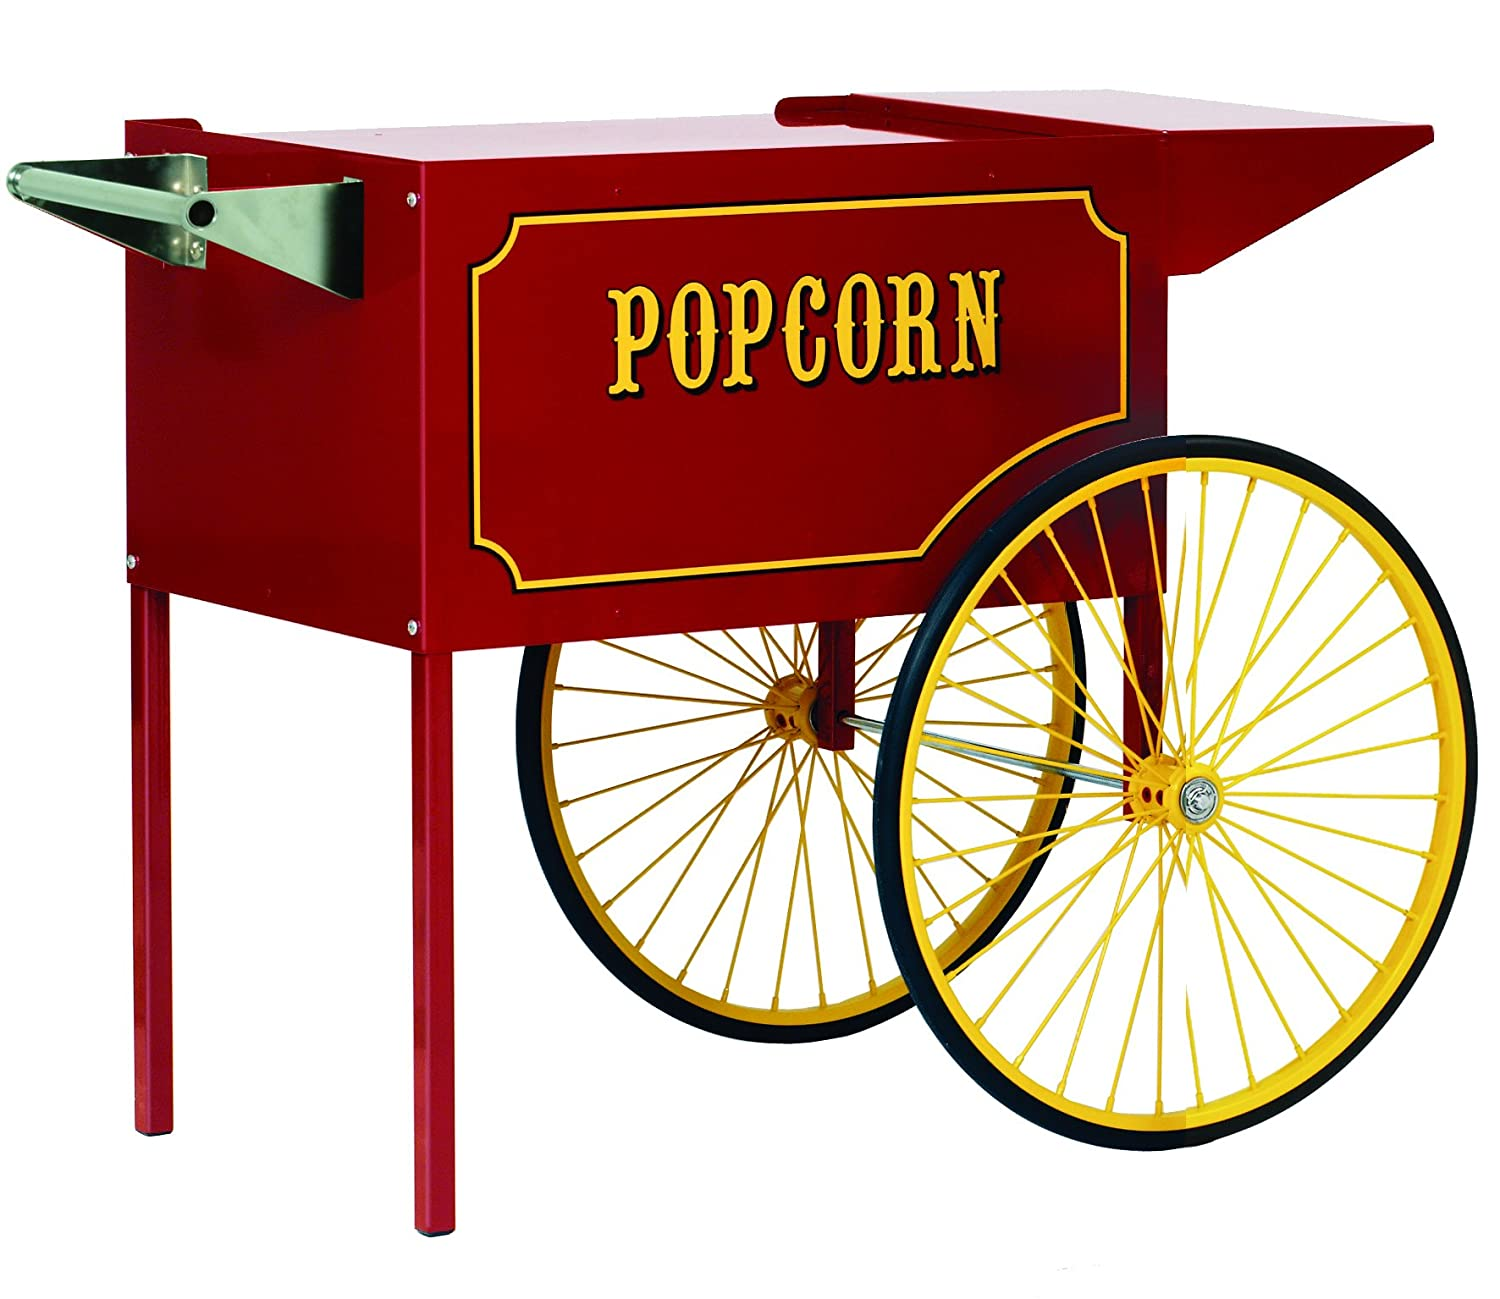 Paragon – Manufactured Fun Medium Popcorn Cart for 6 and 8-Ounce Poppers